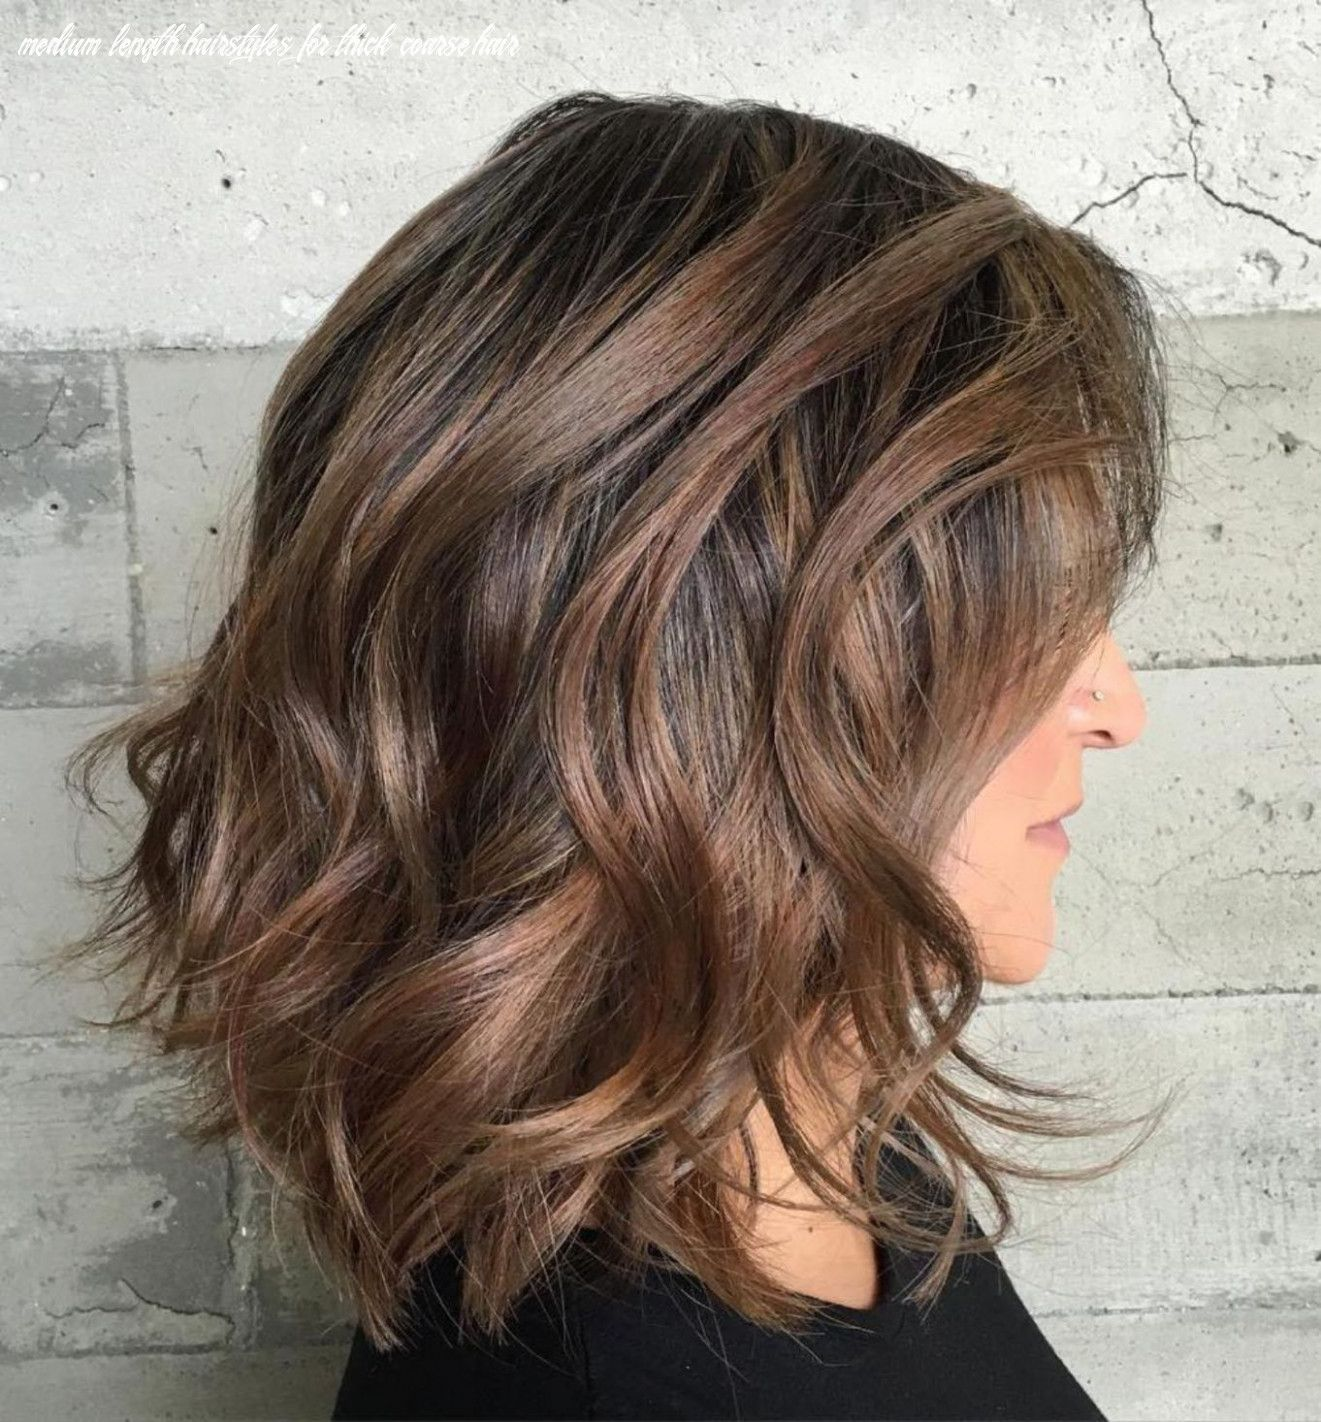 9 Medium Length Hairstyles For Thick Coarse Hair In 2020 Haircut For Thick Hair Wavy Hairstyles Medium Thick Hair Styles